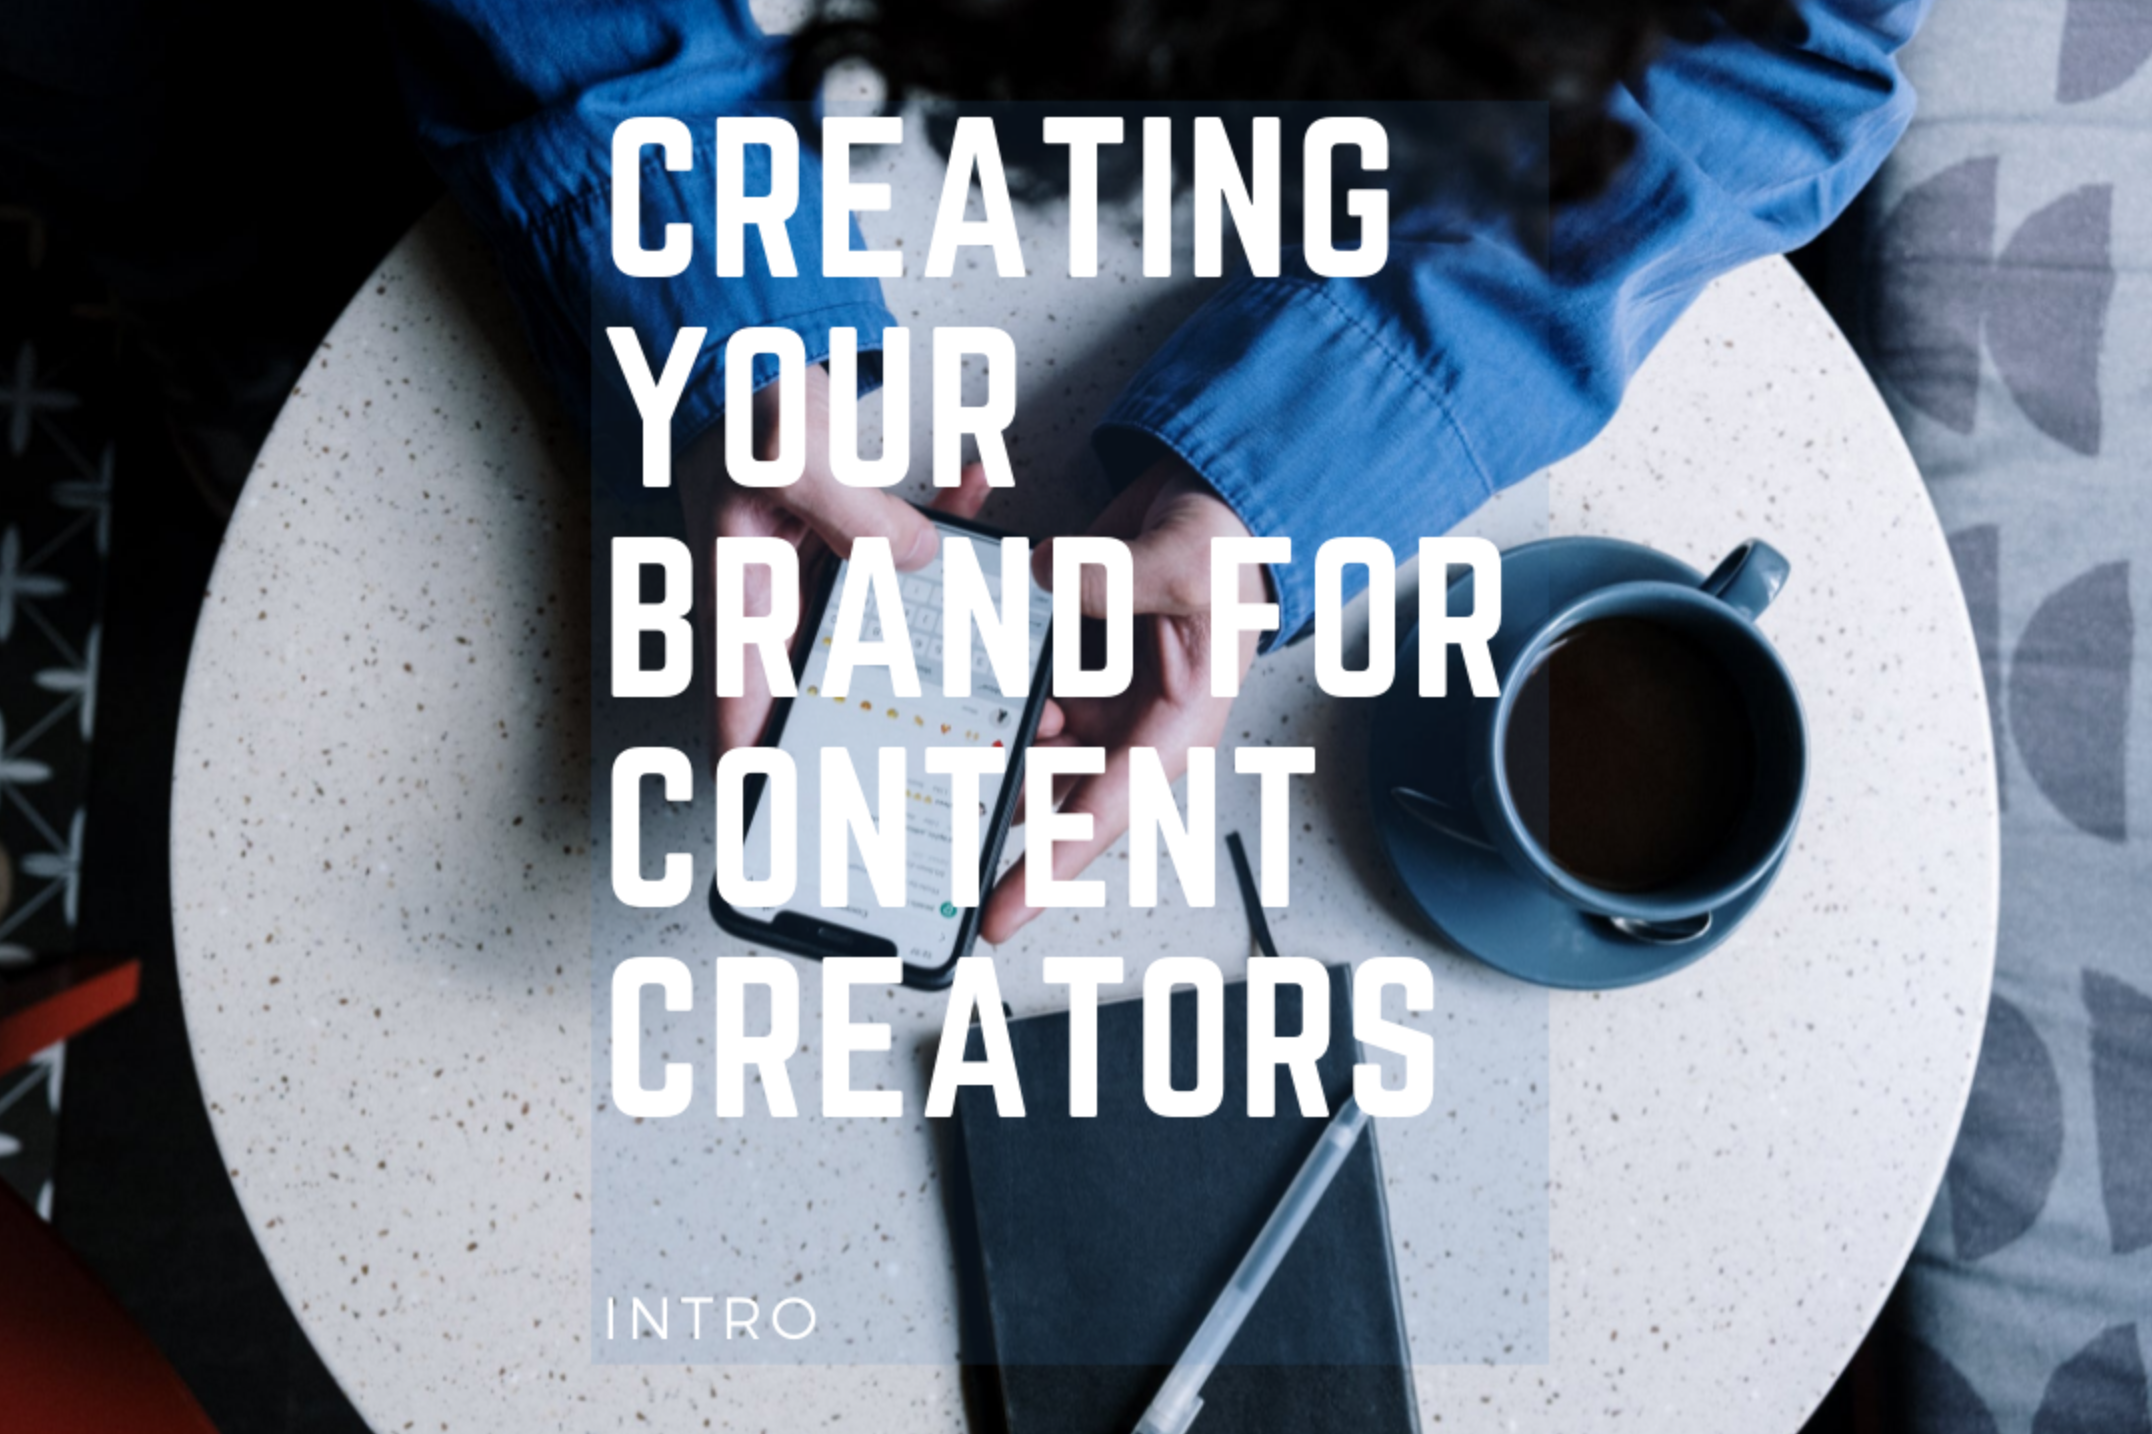 Creating Your Brand For Content Creators